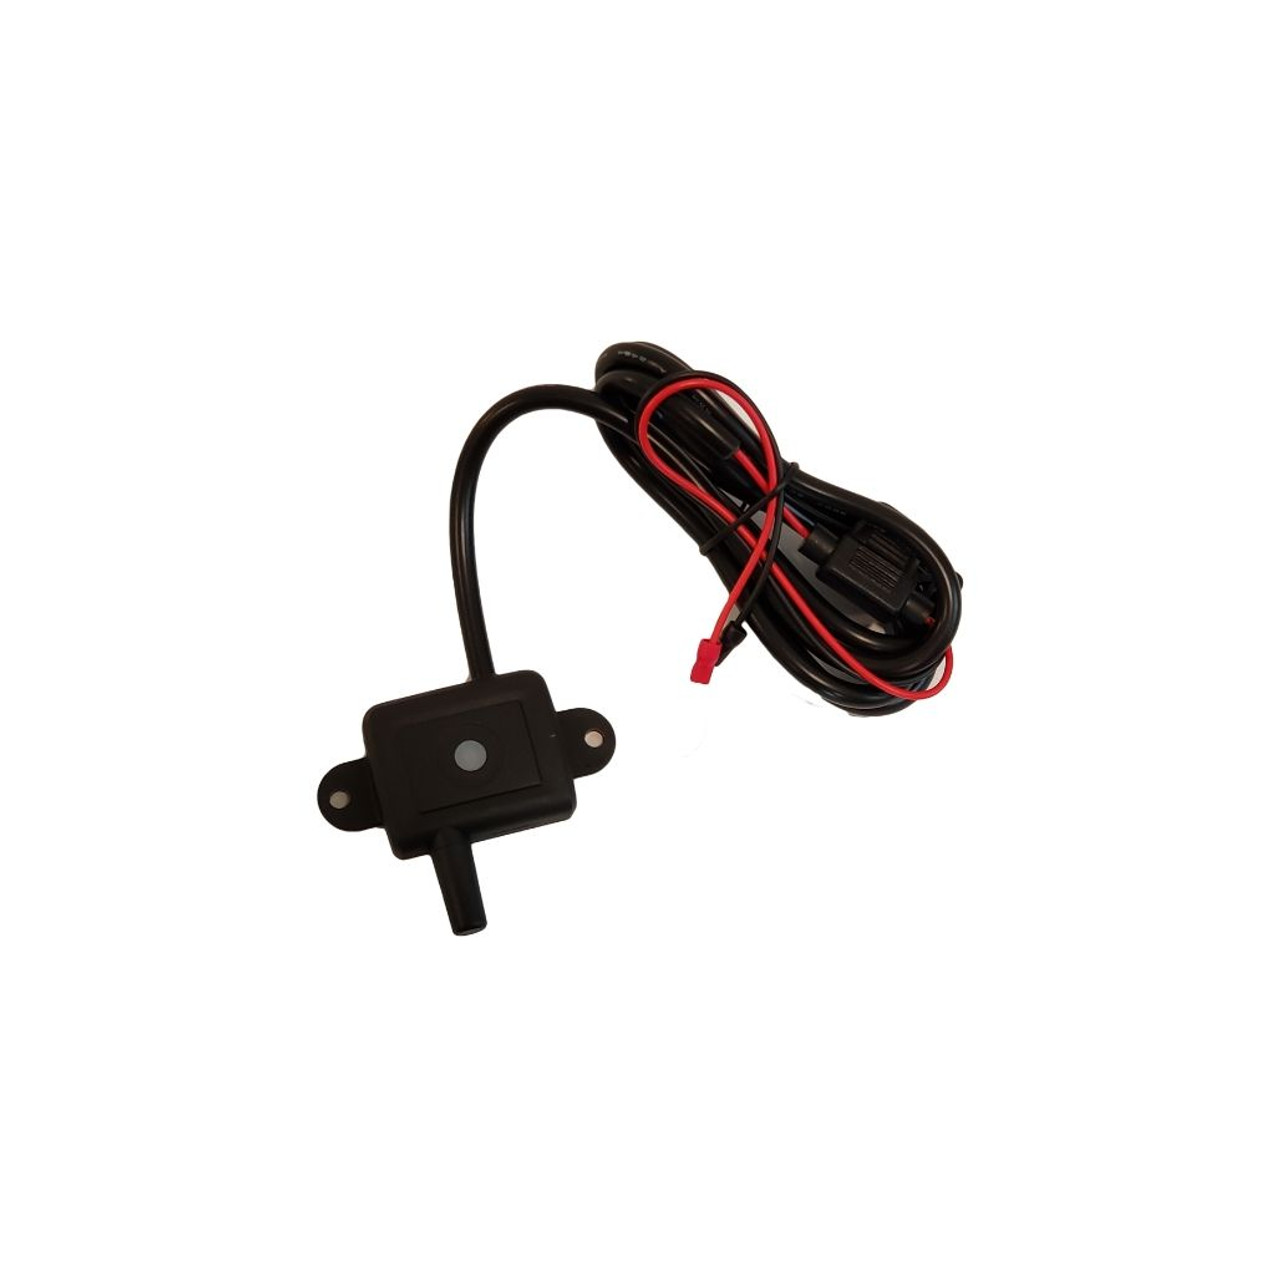 TST 507 TPMS with CAP Sensors (04) and Repeater